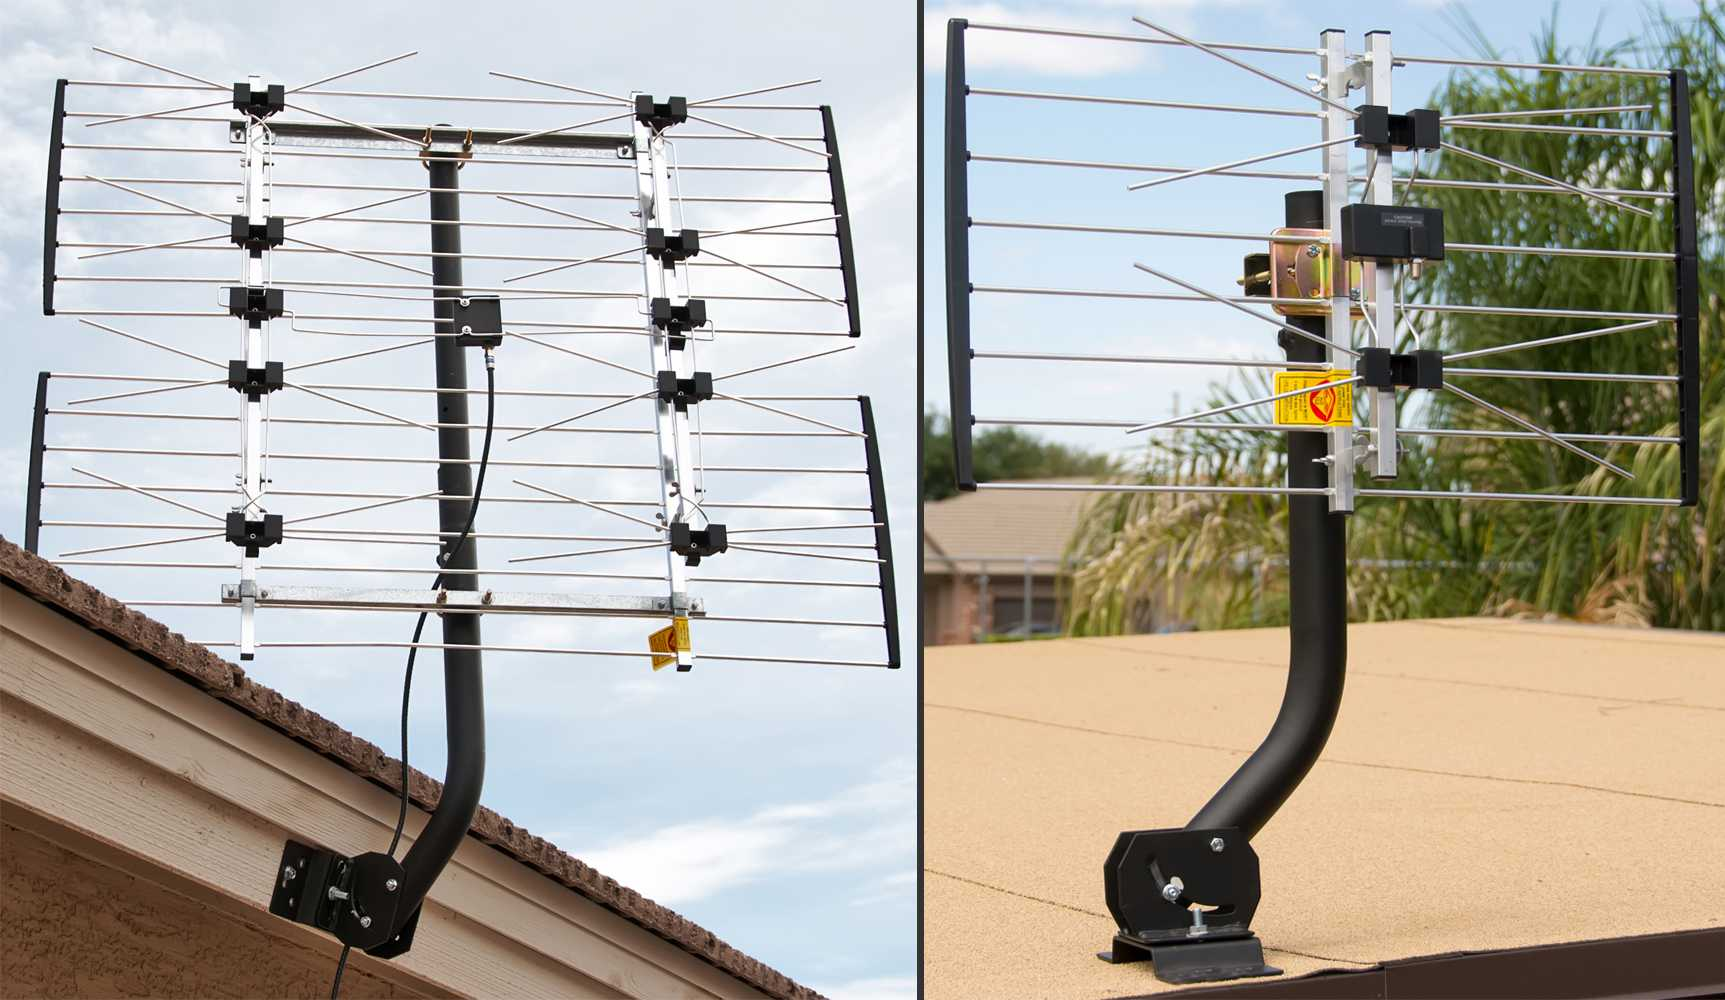 How to Improve Your Antenna for Better TV Reception